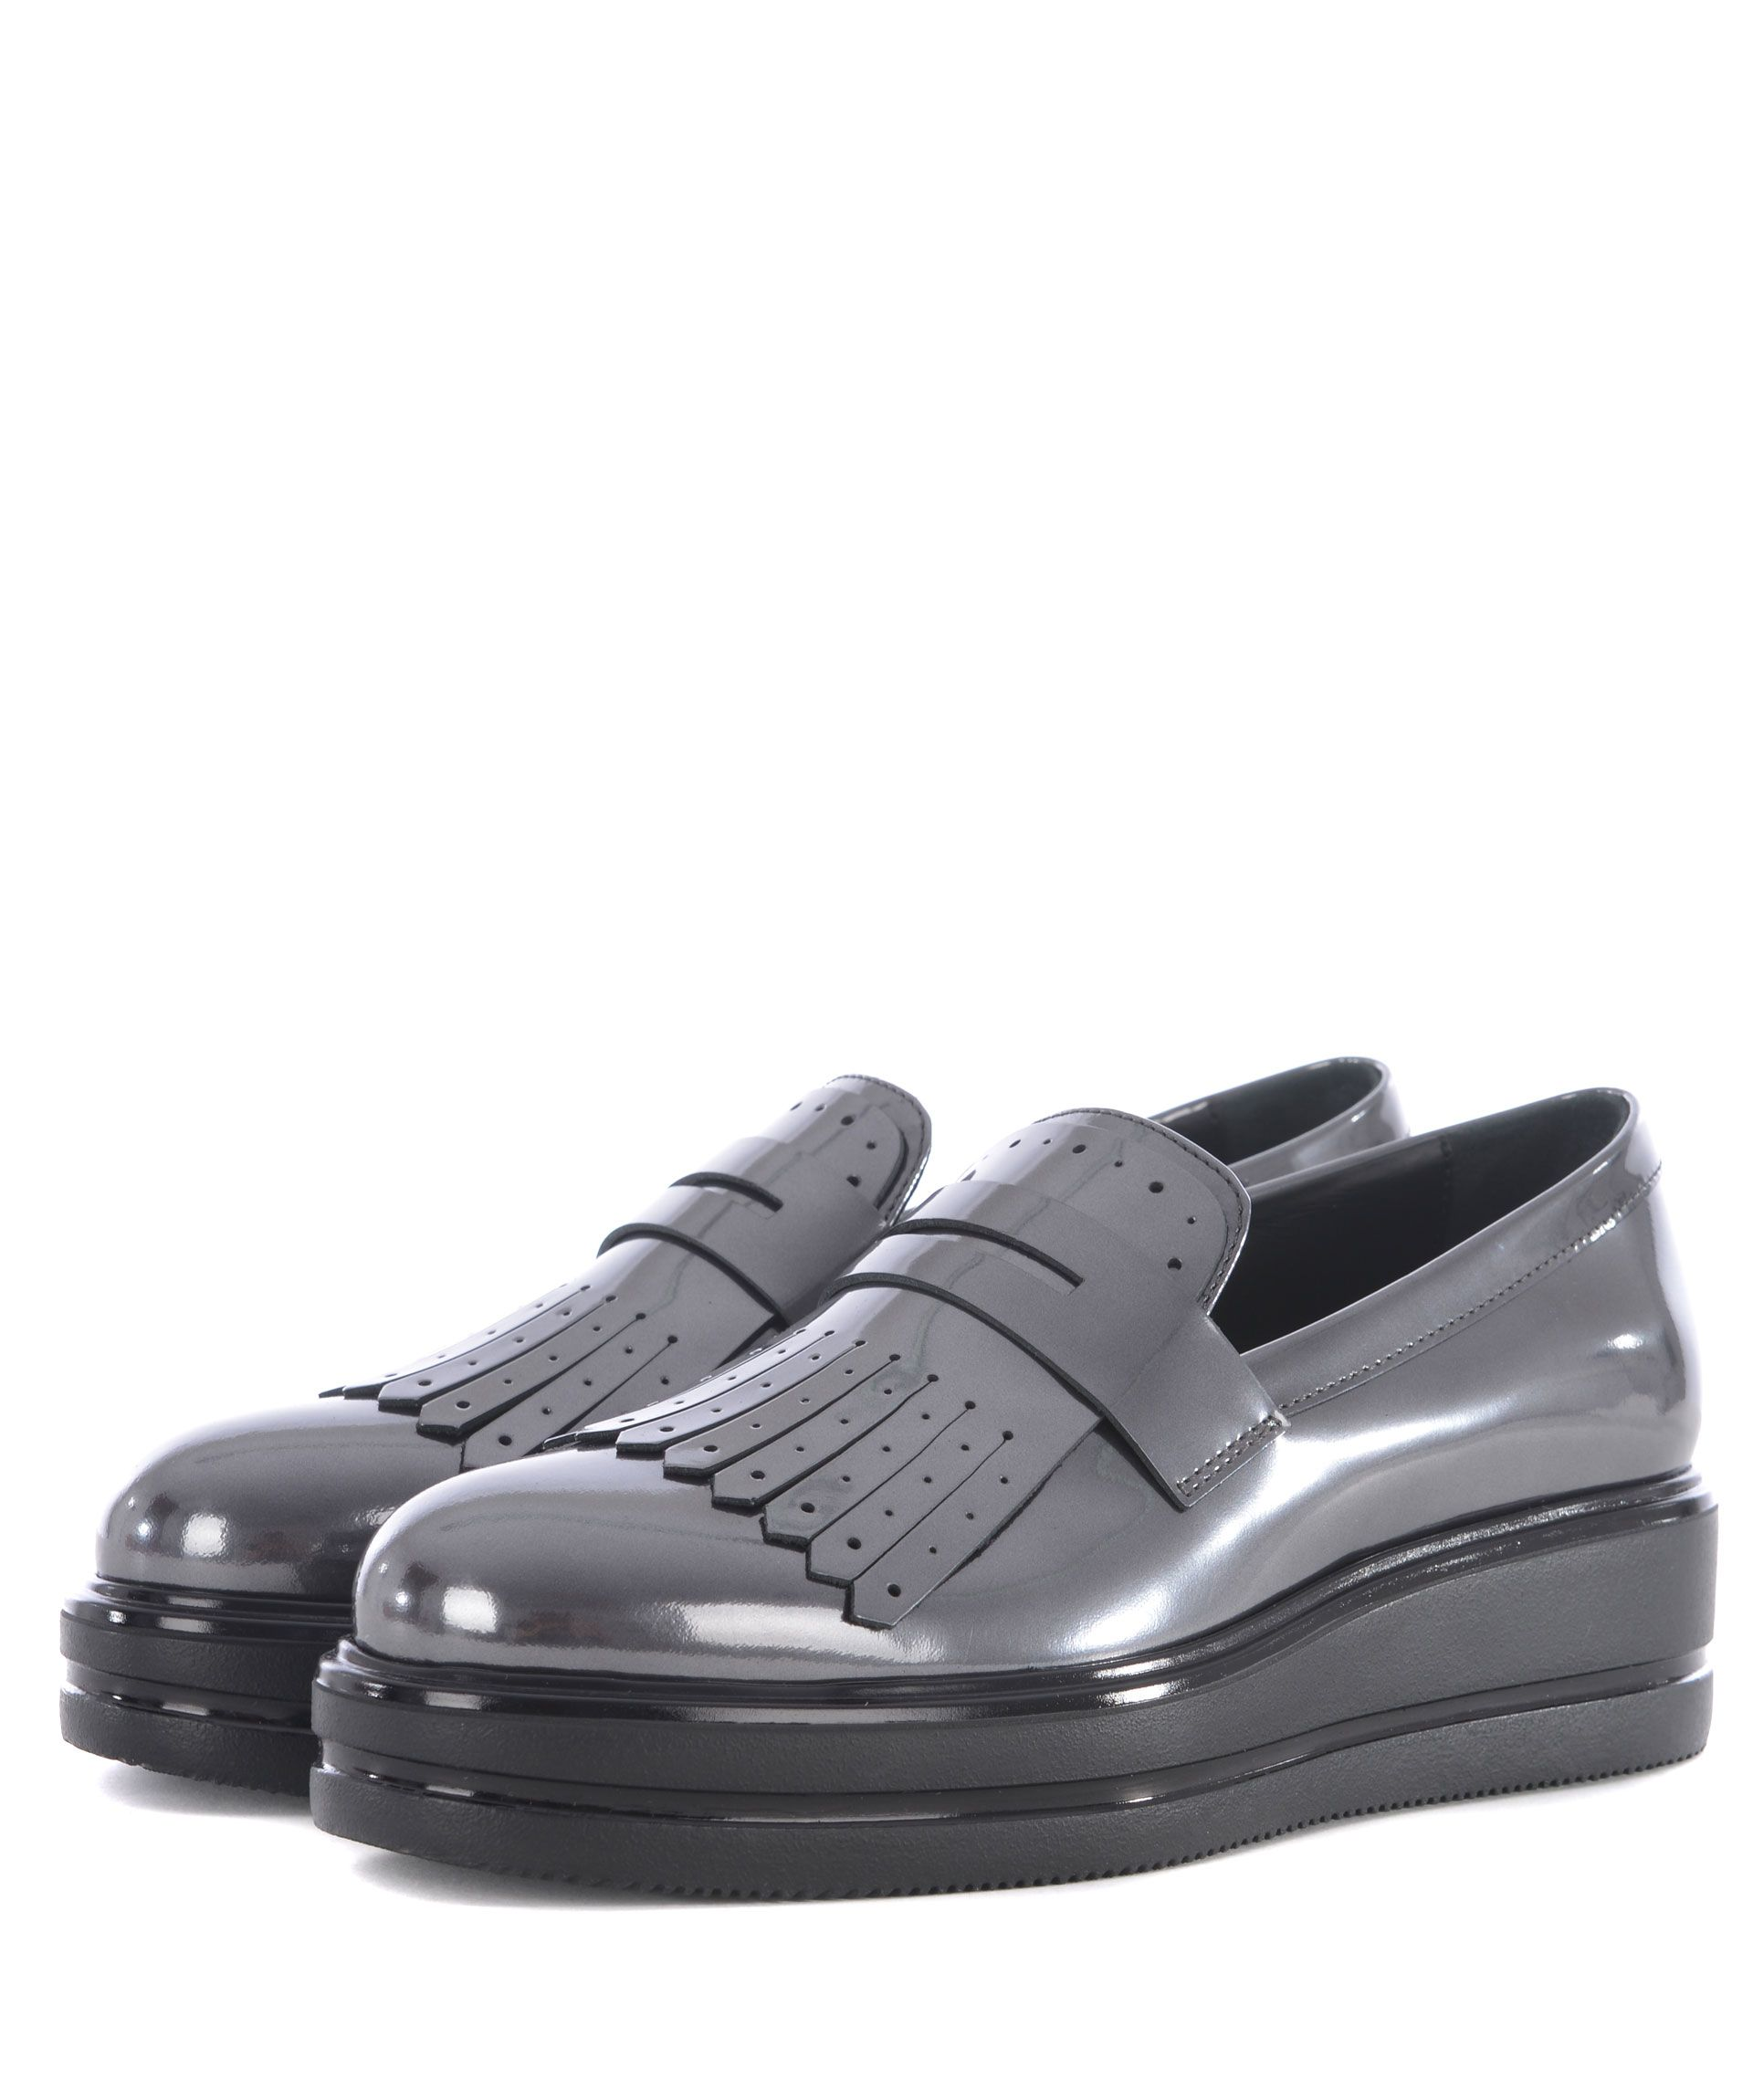 Hogan H323 Maxi Wedge Loafers